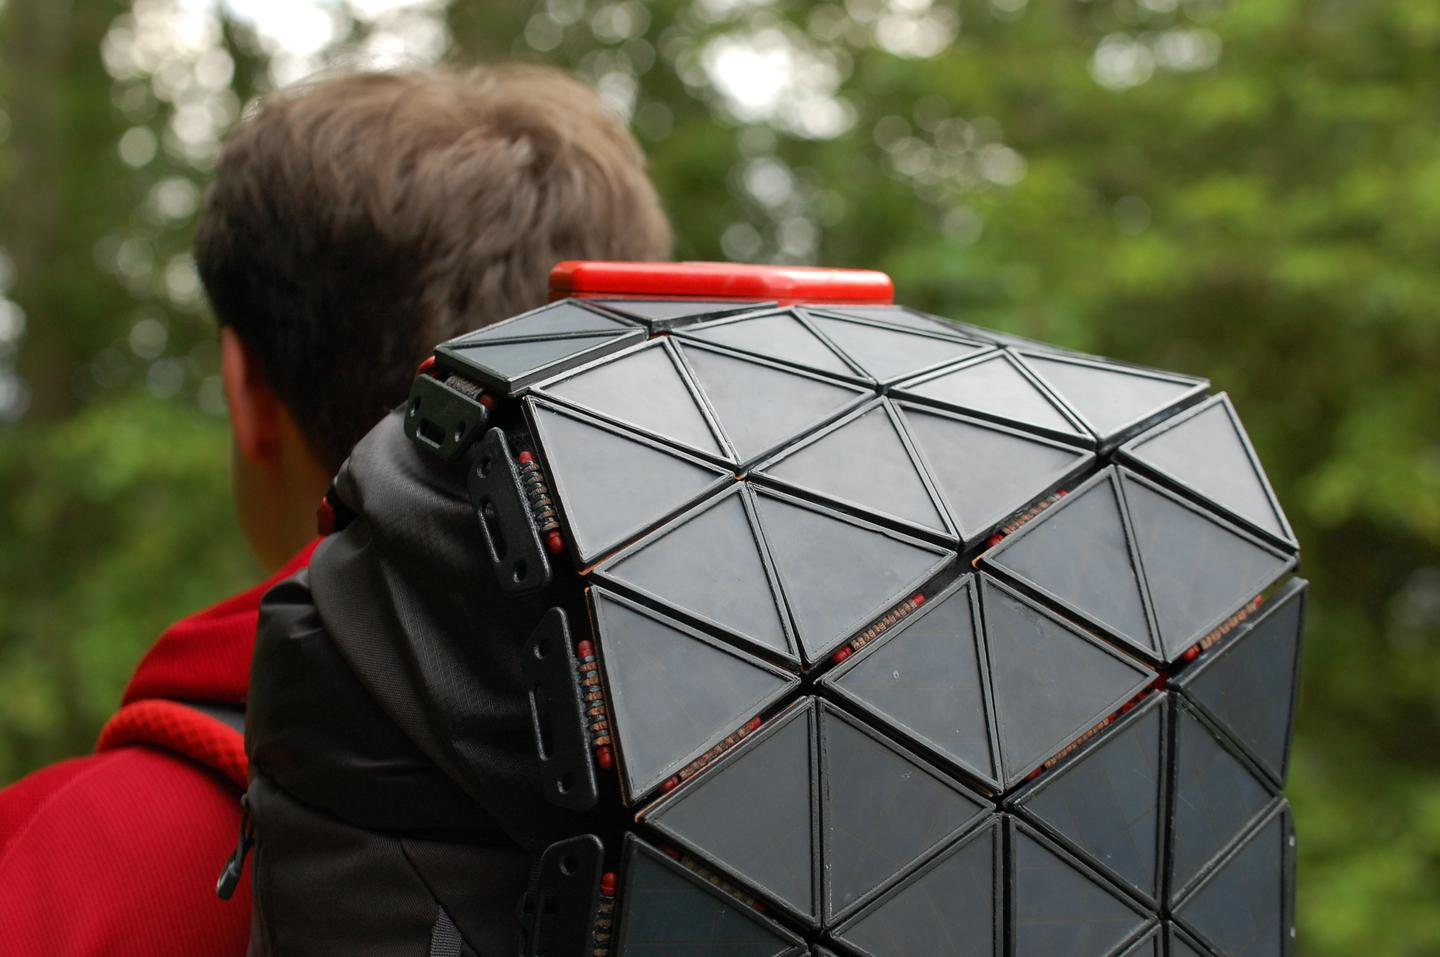 SunUp features a 15-W solar panel capable of fully charging a 4,000 mAh battery within 12 hours